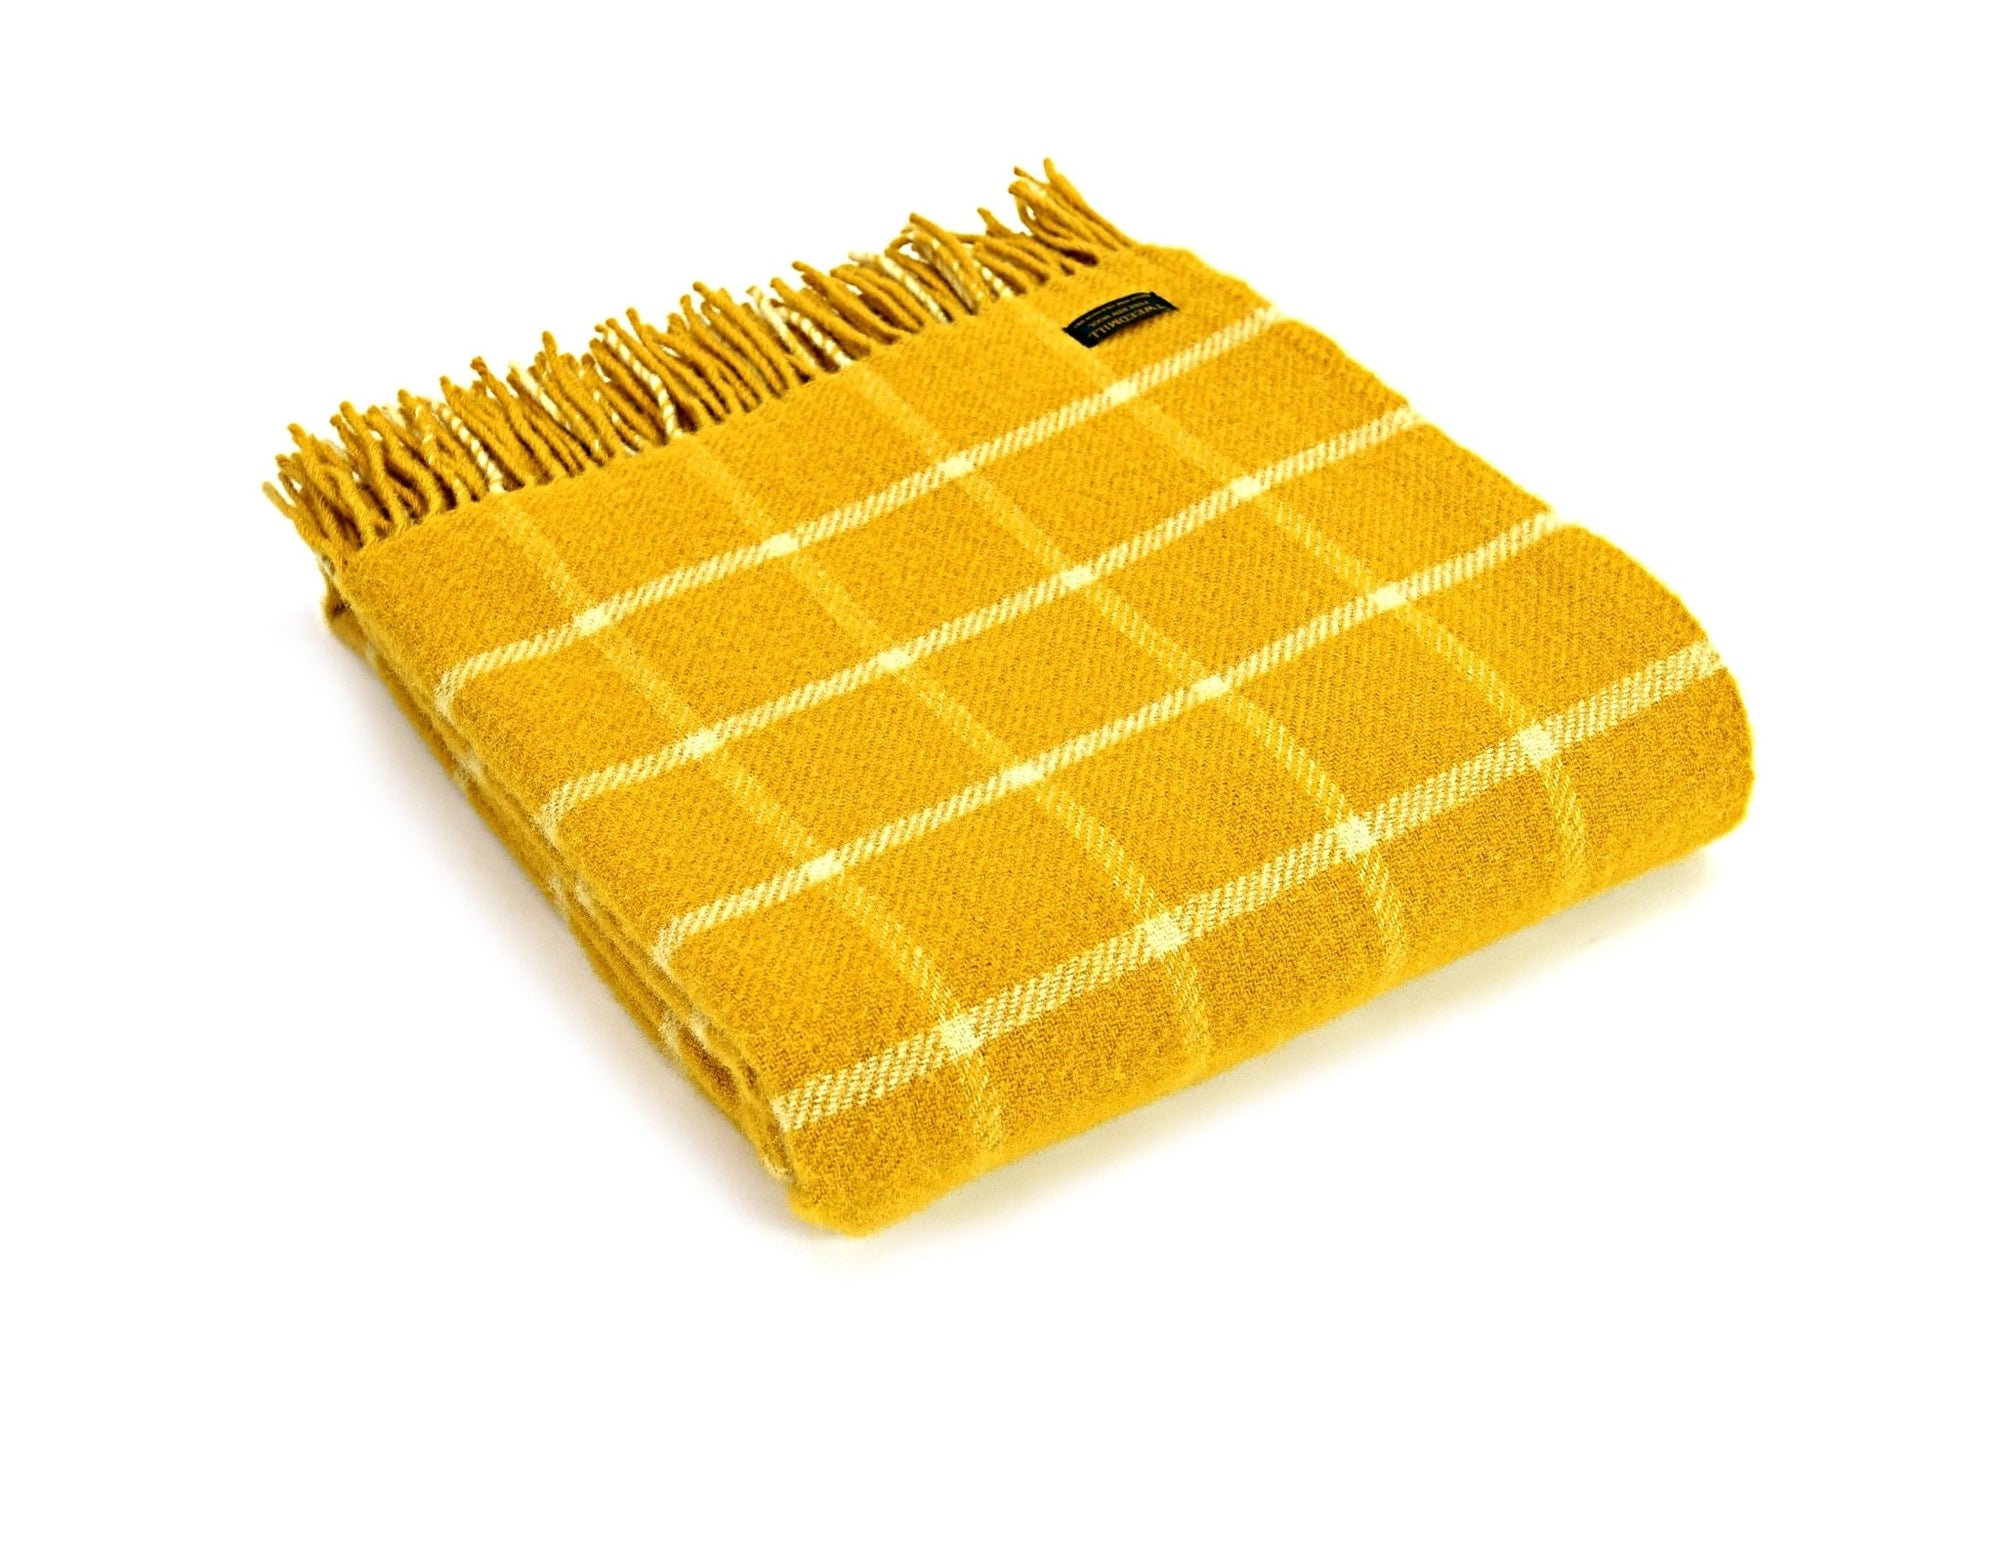 Tweedmill Chequered Check Yellow pure wool throw - Urban Wool